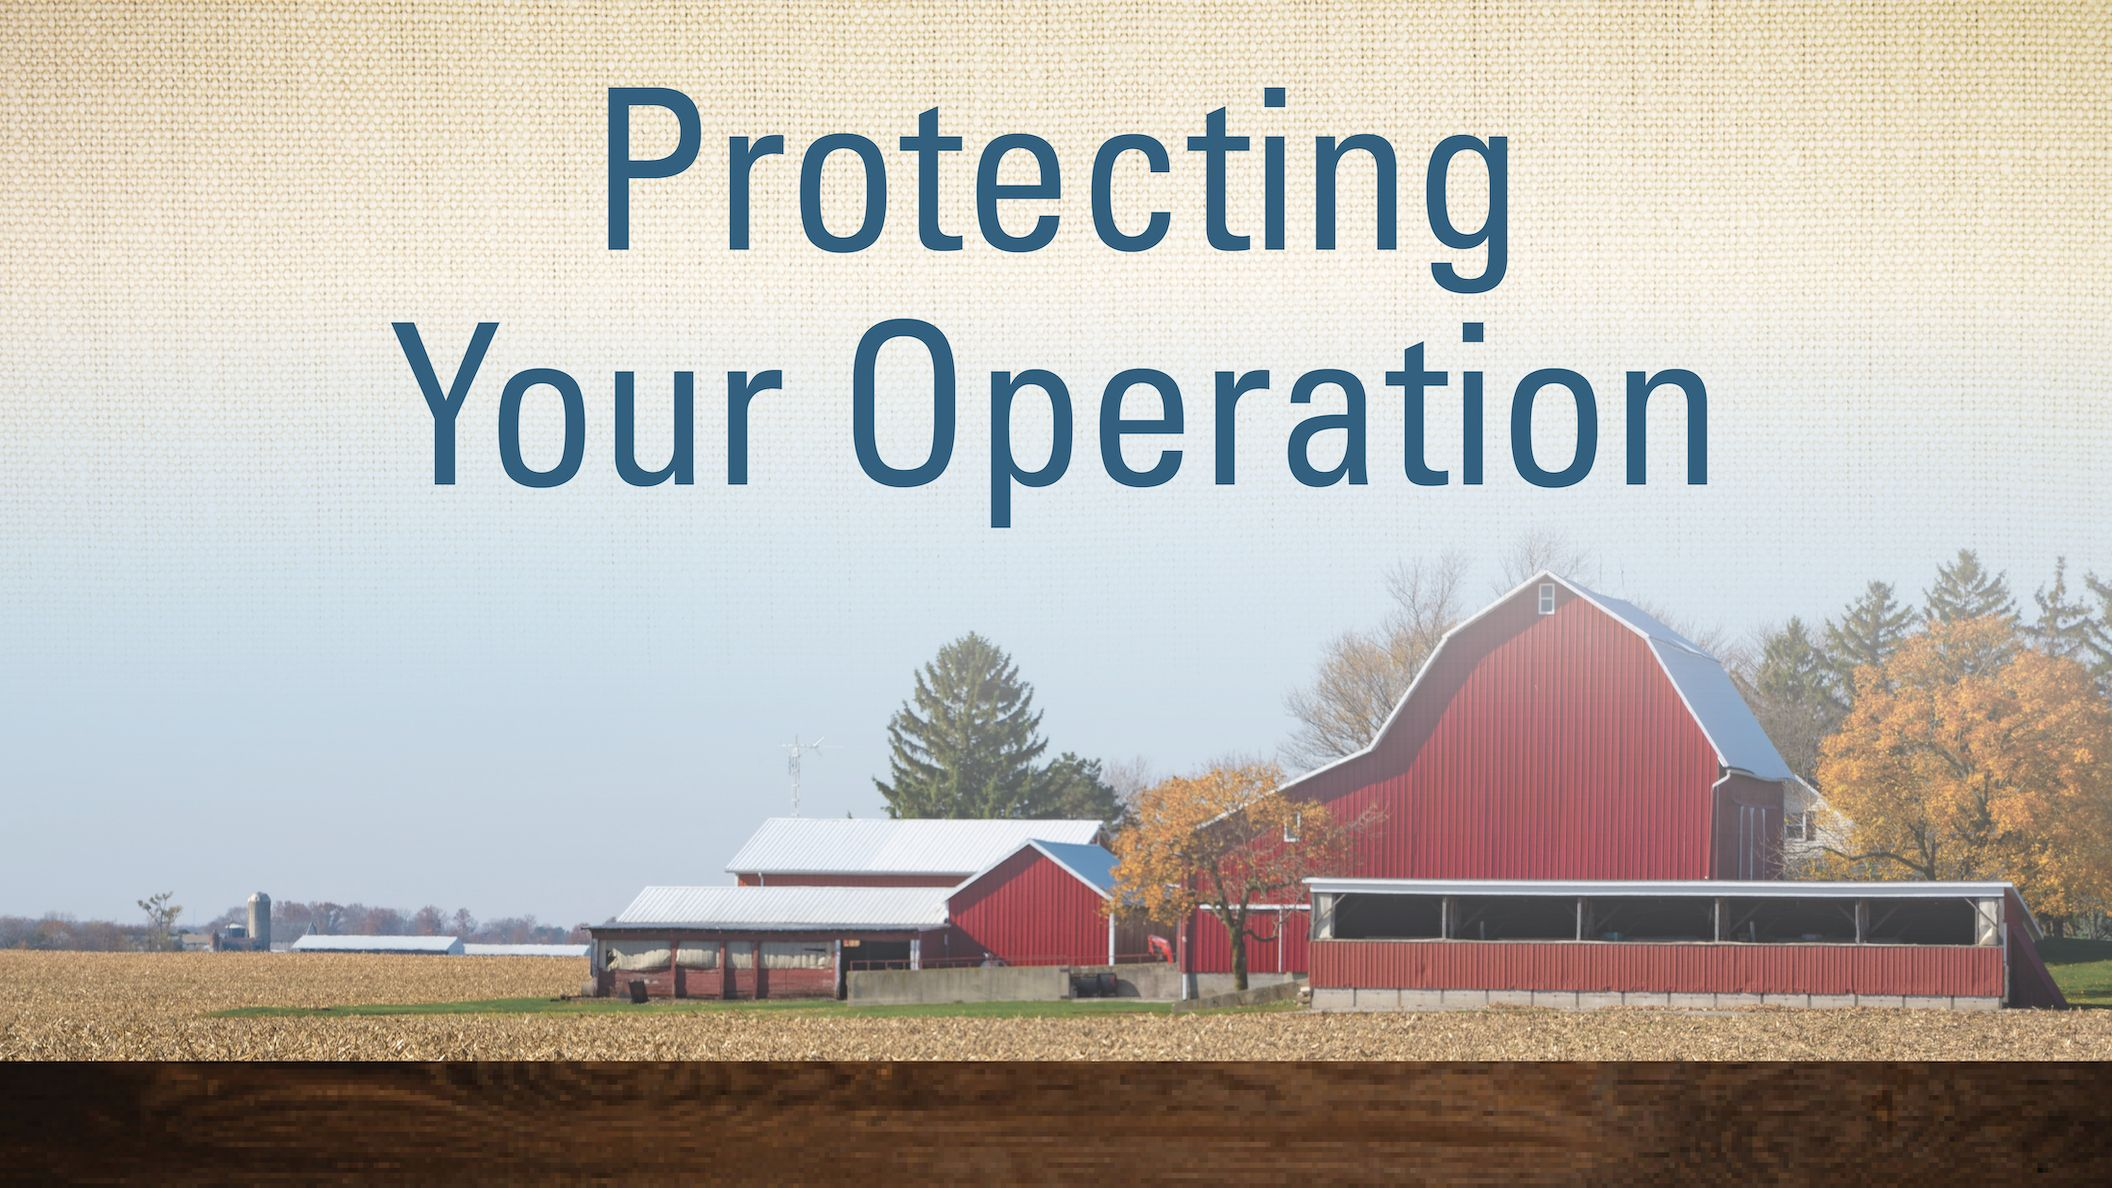 Protecting Your Operation